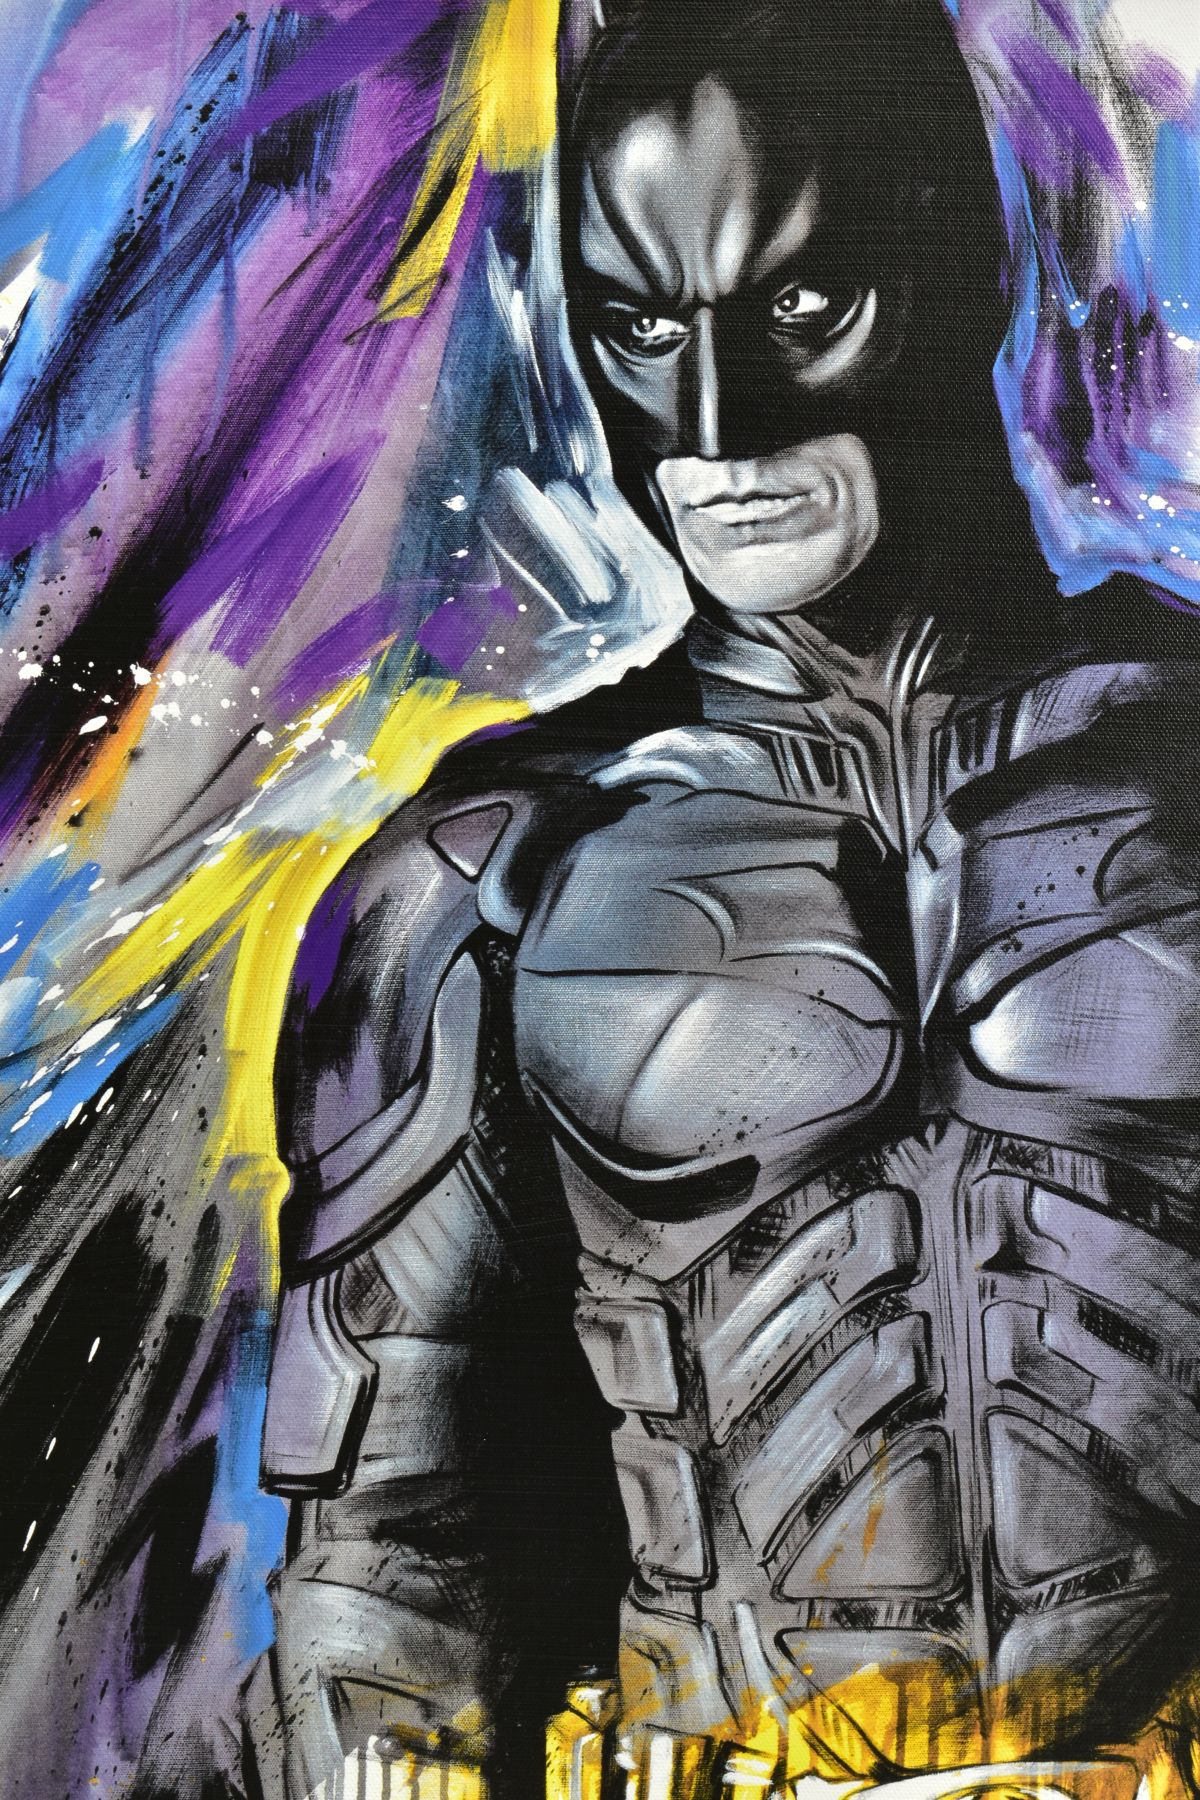 JEN ALLEN (BRITISH 1979), 'Silent Guardian', a Limited Edition print of Batman, 10/195, signed lower - Image 2 of 6